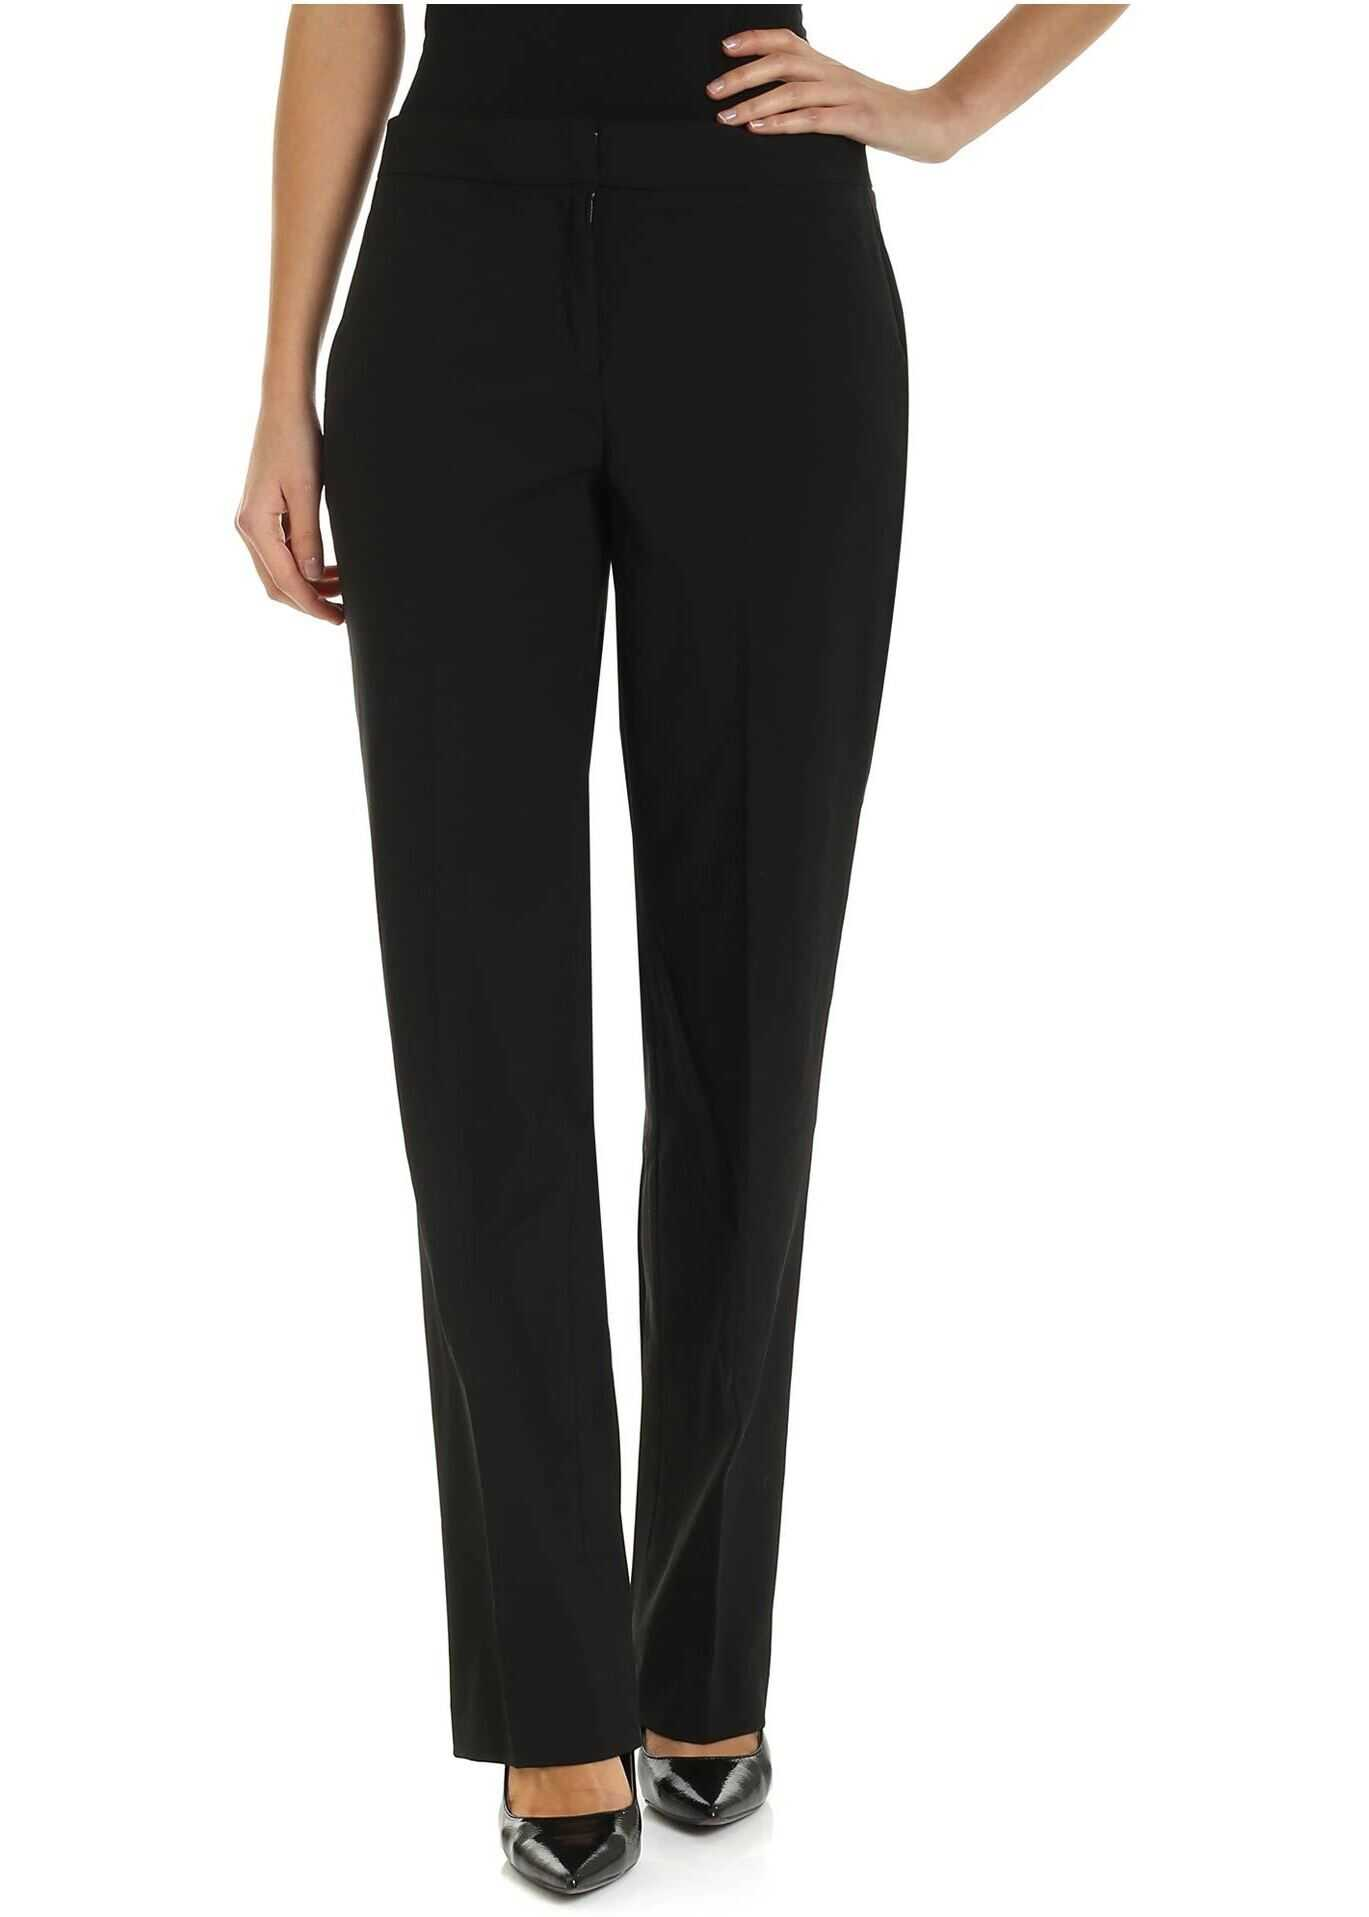 Michael Kors Stretch Wool Pants In Black Black